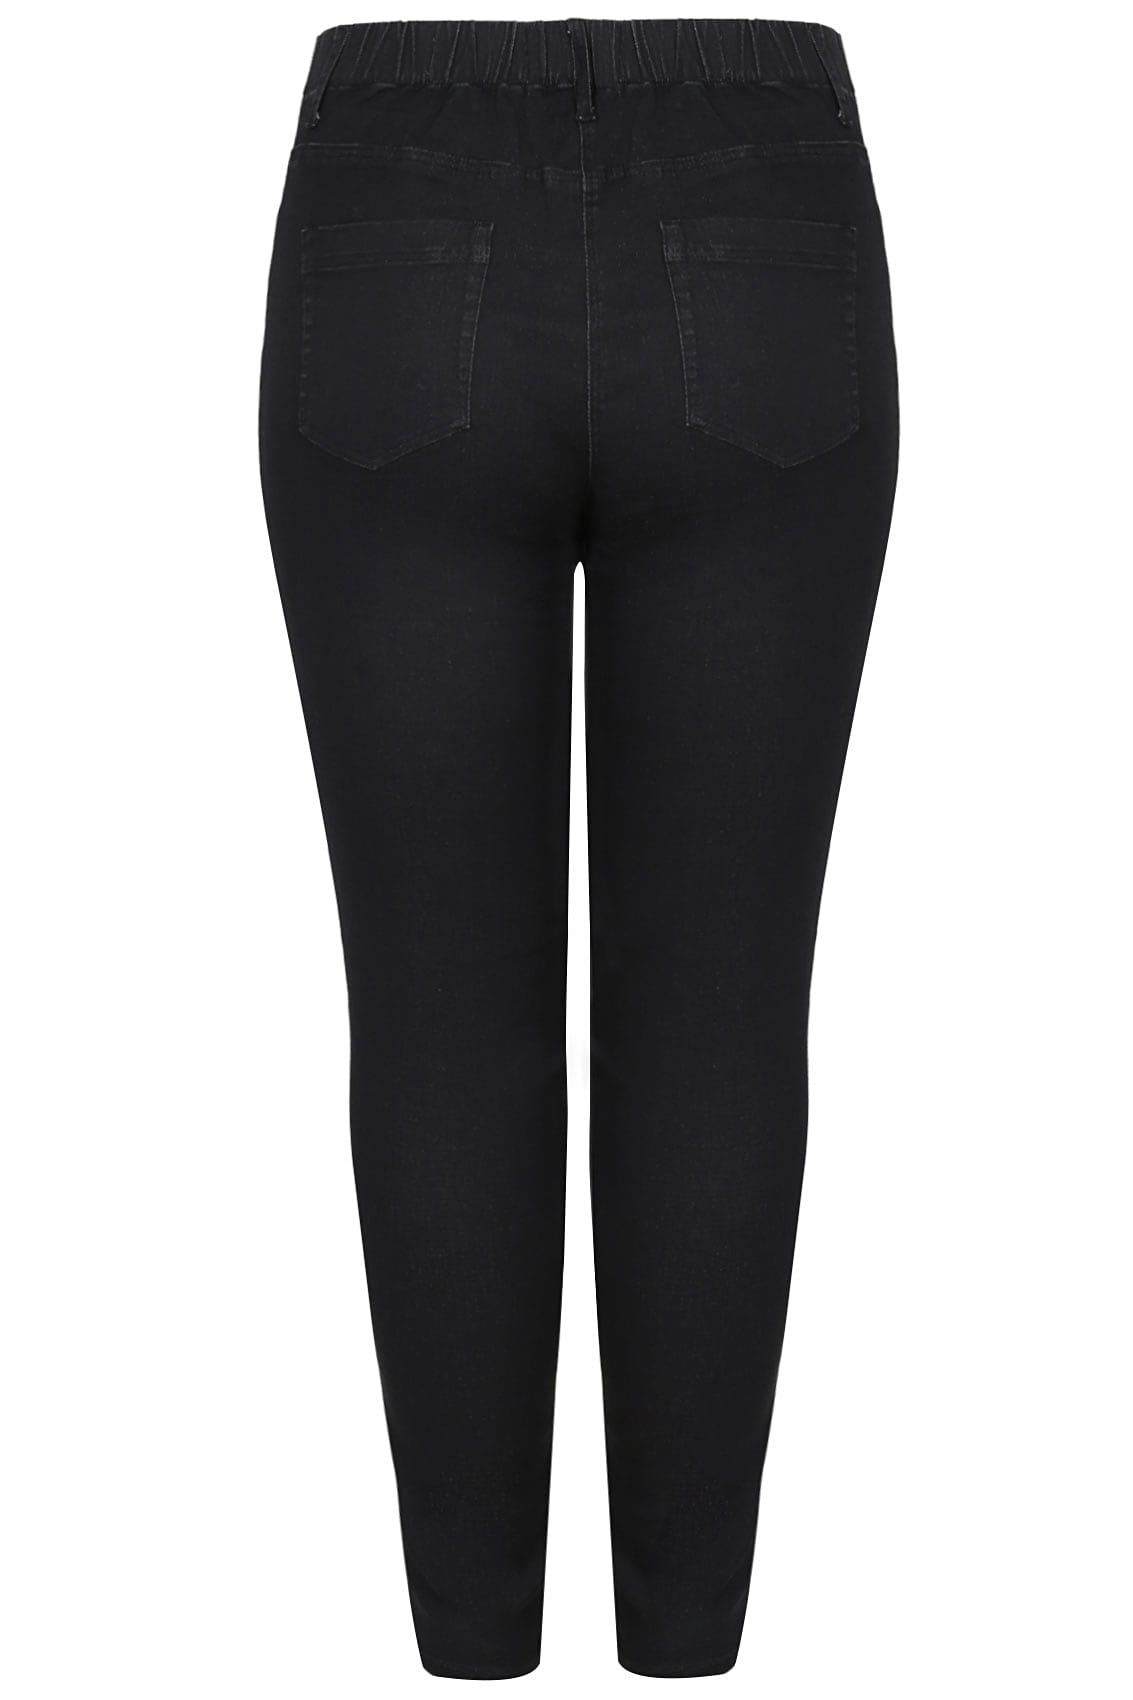 Rooms: Black Washed Ultimate Comfort Stretch Jeggings, Plus Size